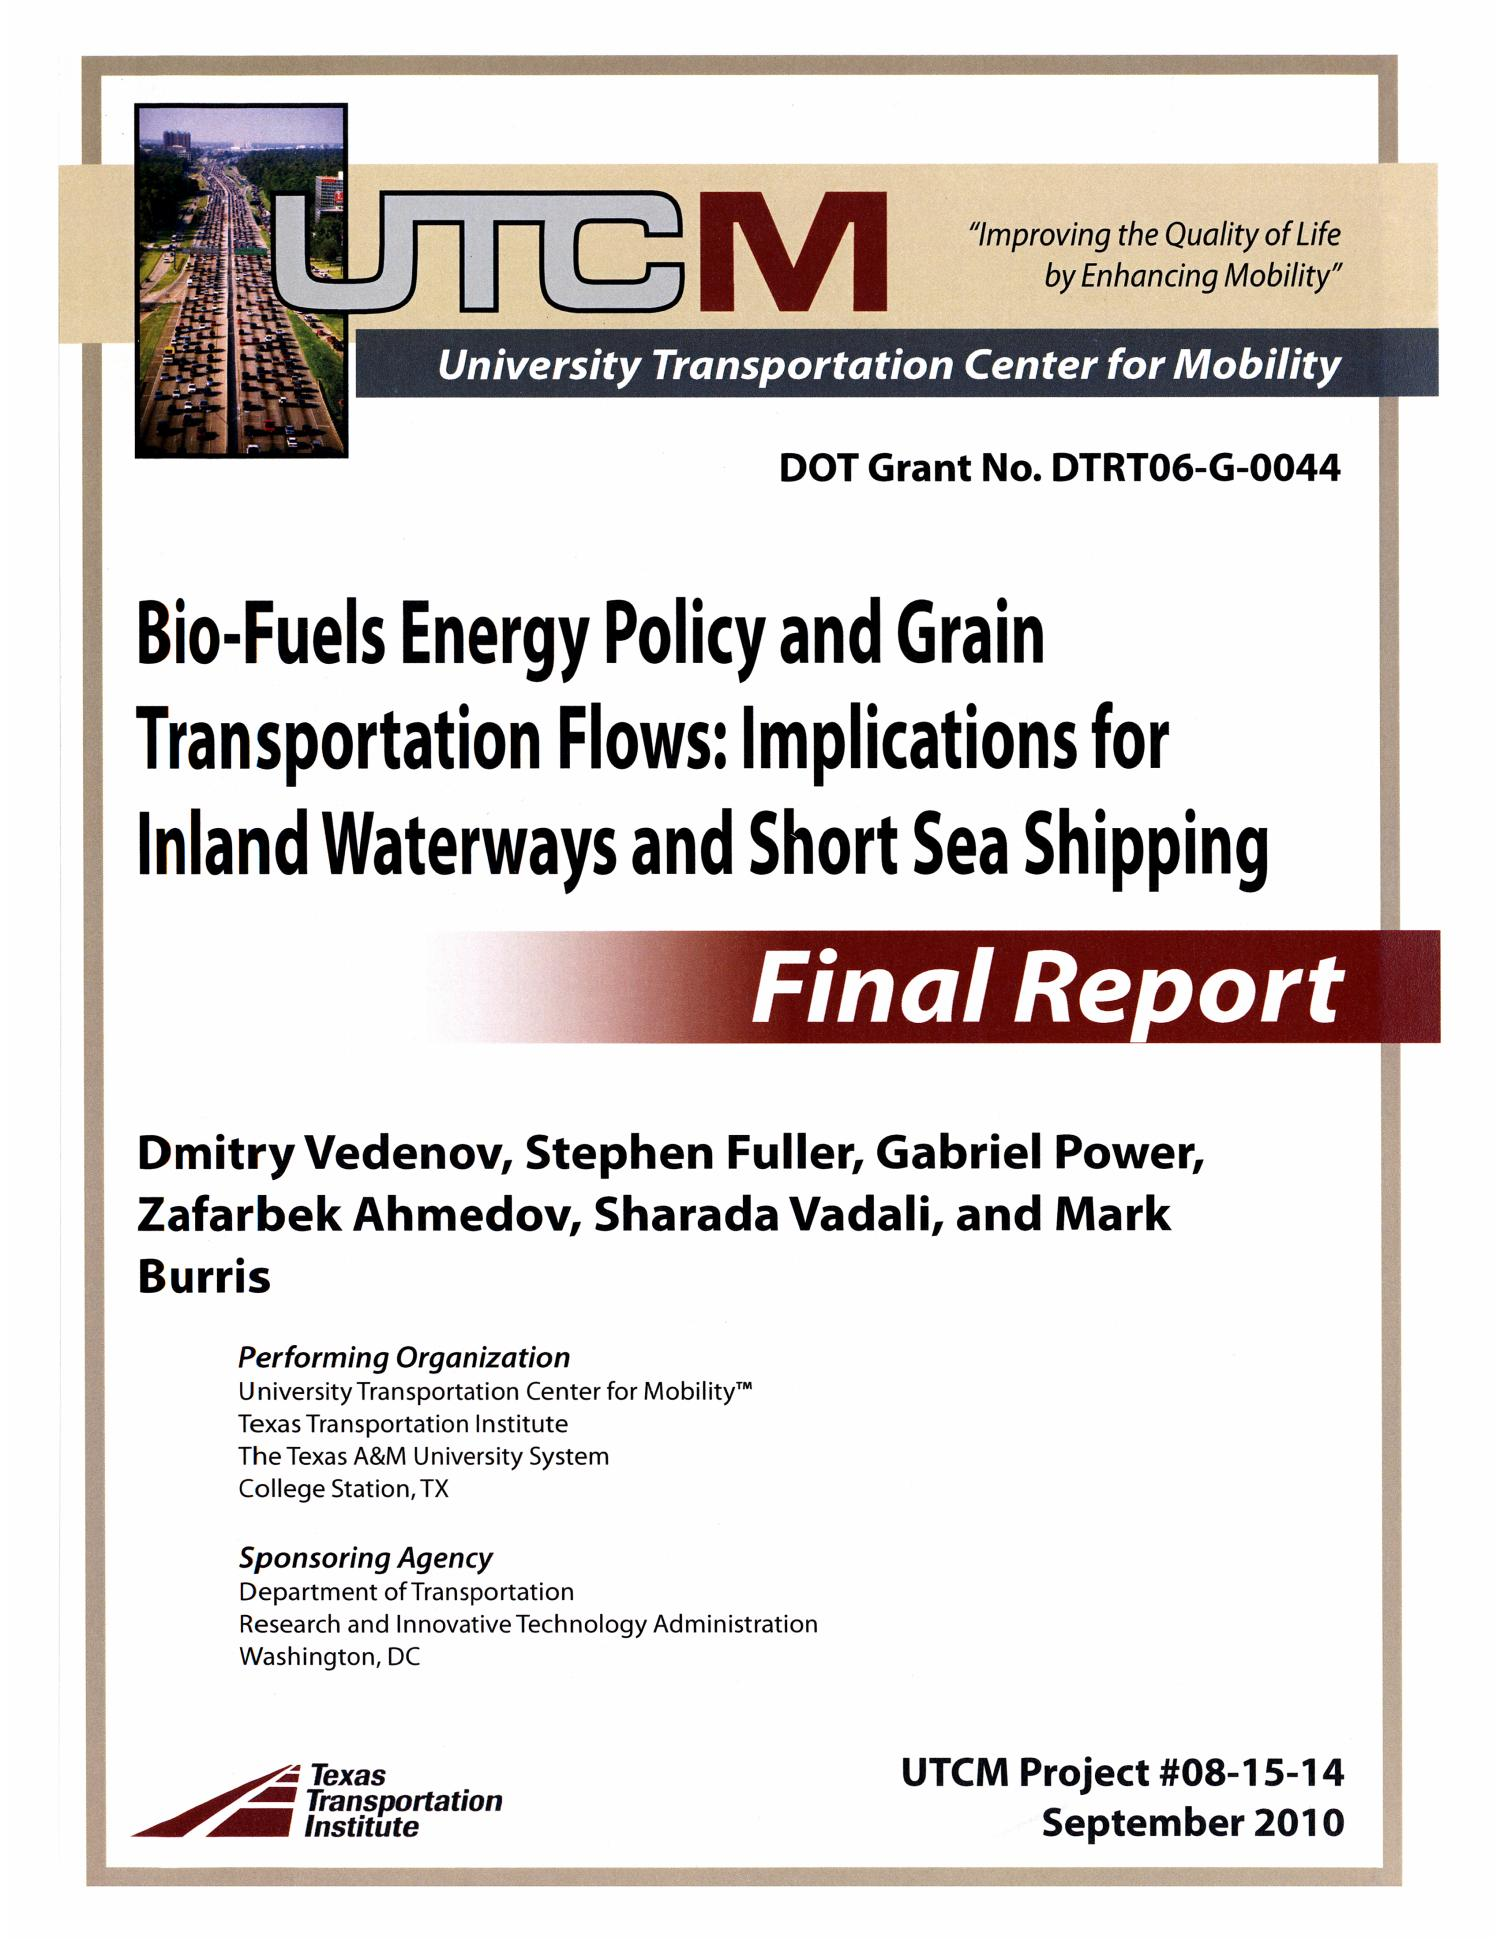 Grain Bio Biofuels Energy Policy And Grain Transportation Flows